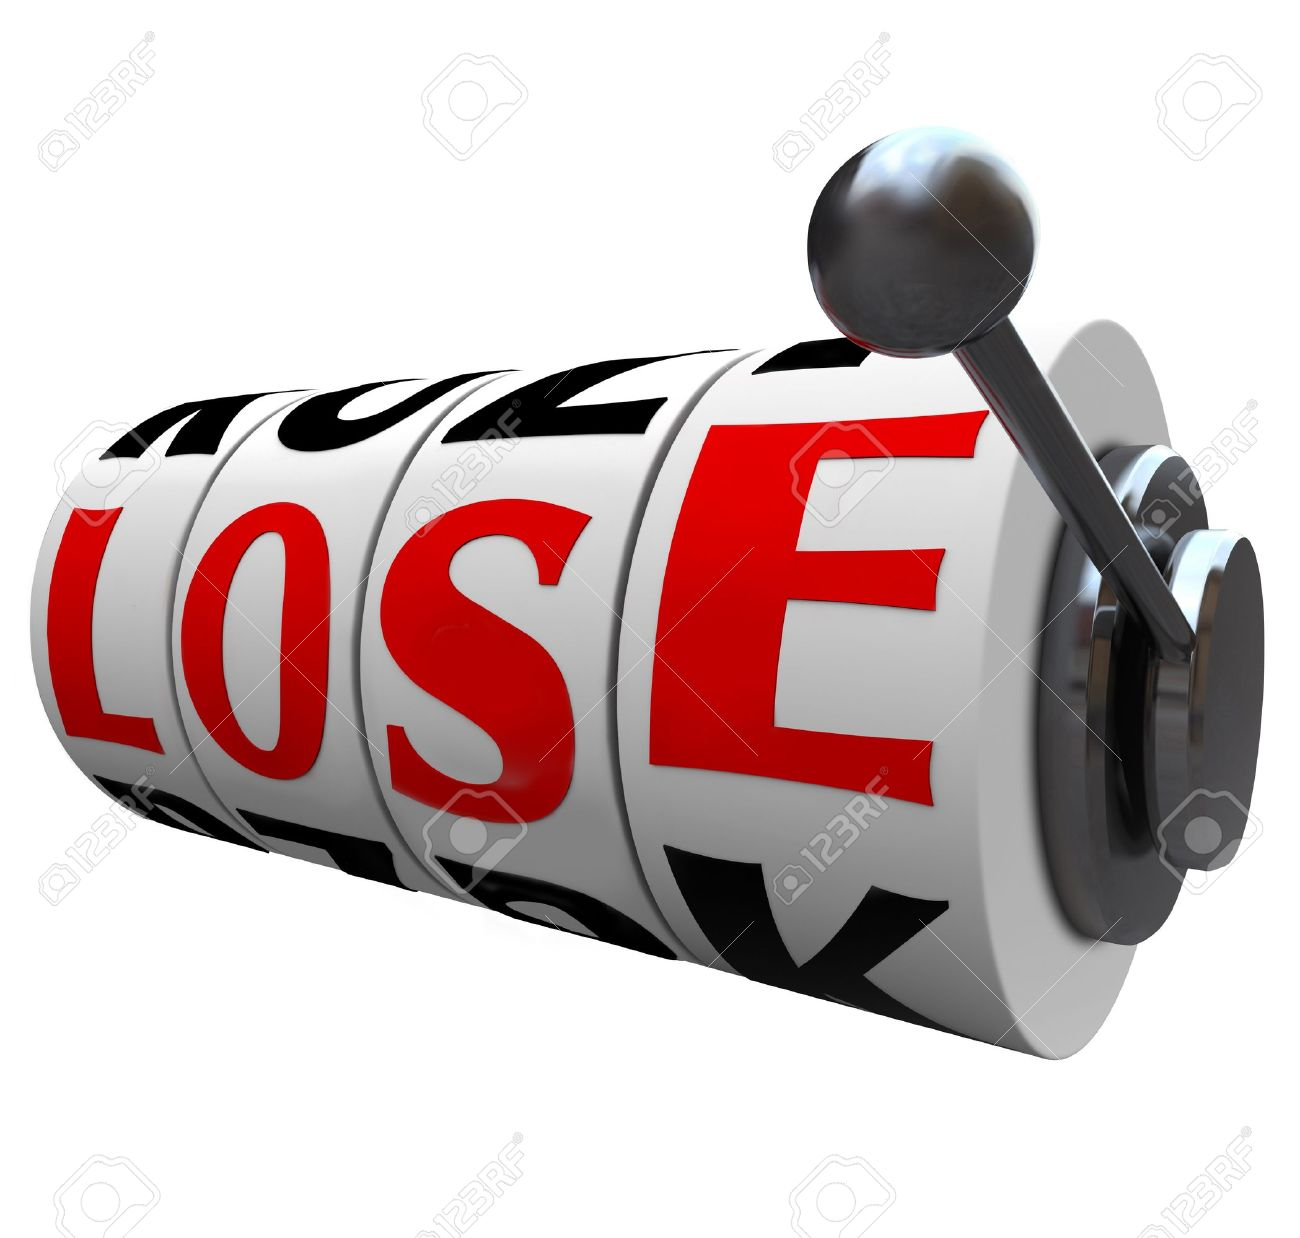 Loss clipart lost money The Word cliparts Losing Lose